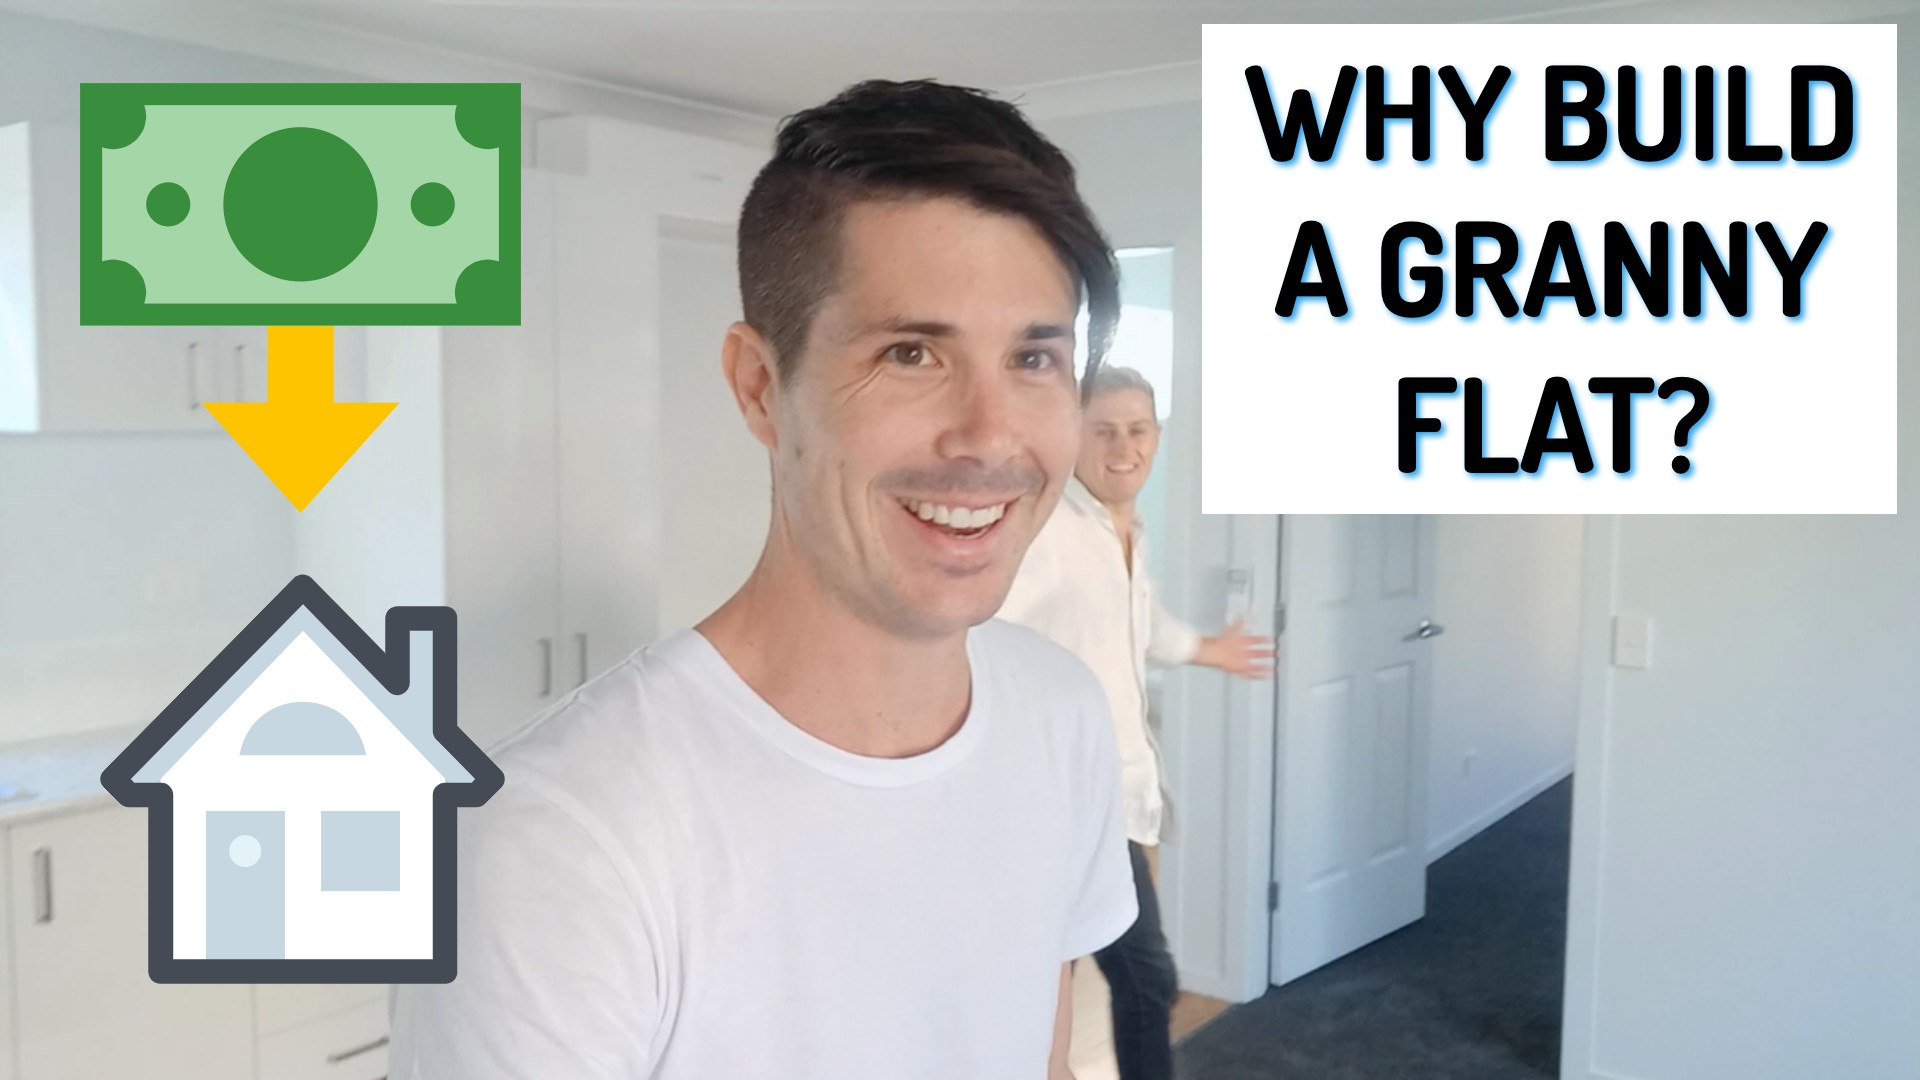 Why Build a Granny Flat?